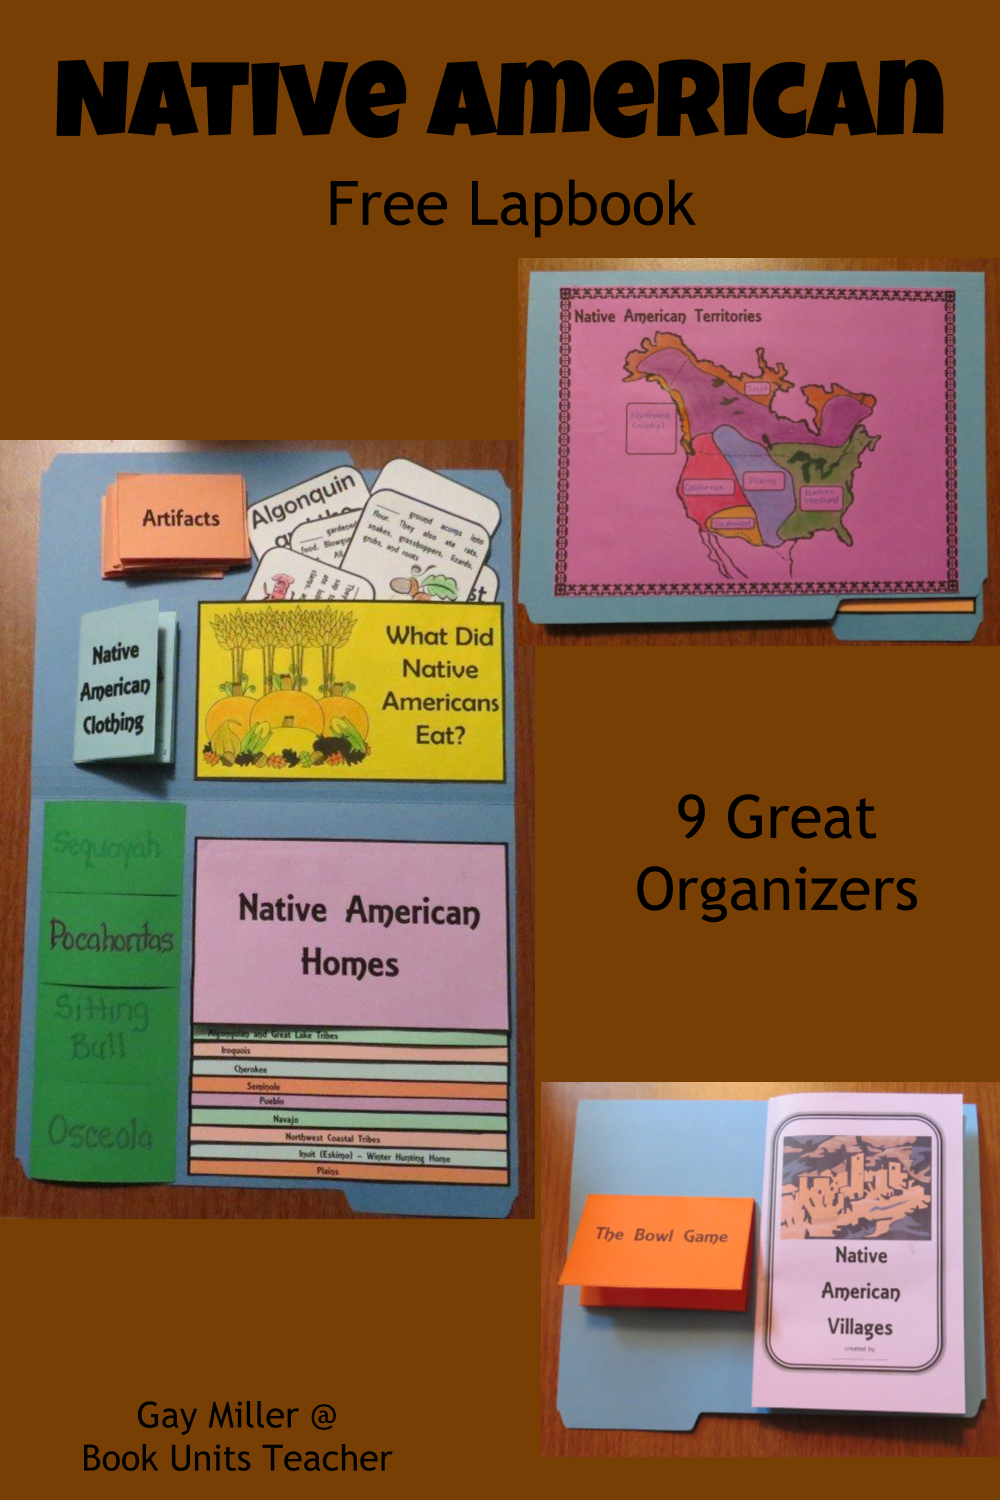 Free Native American Lapbook for Students